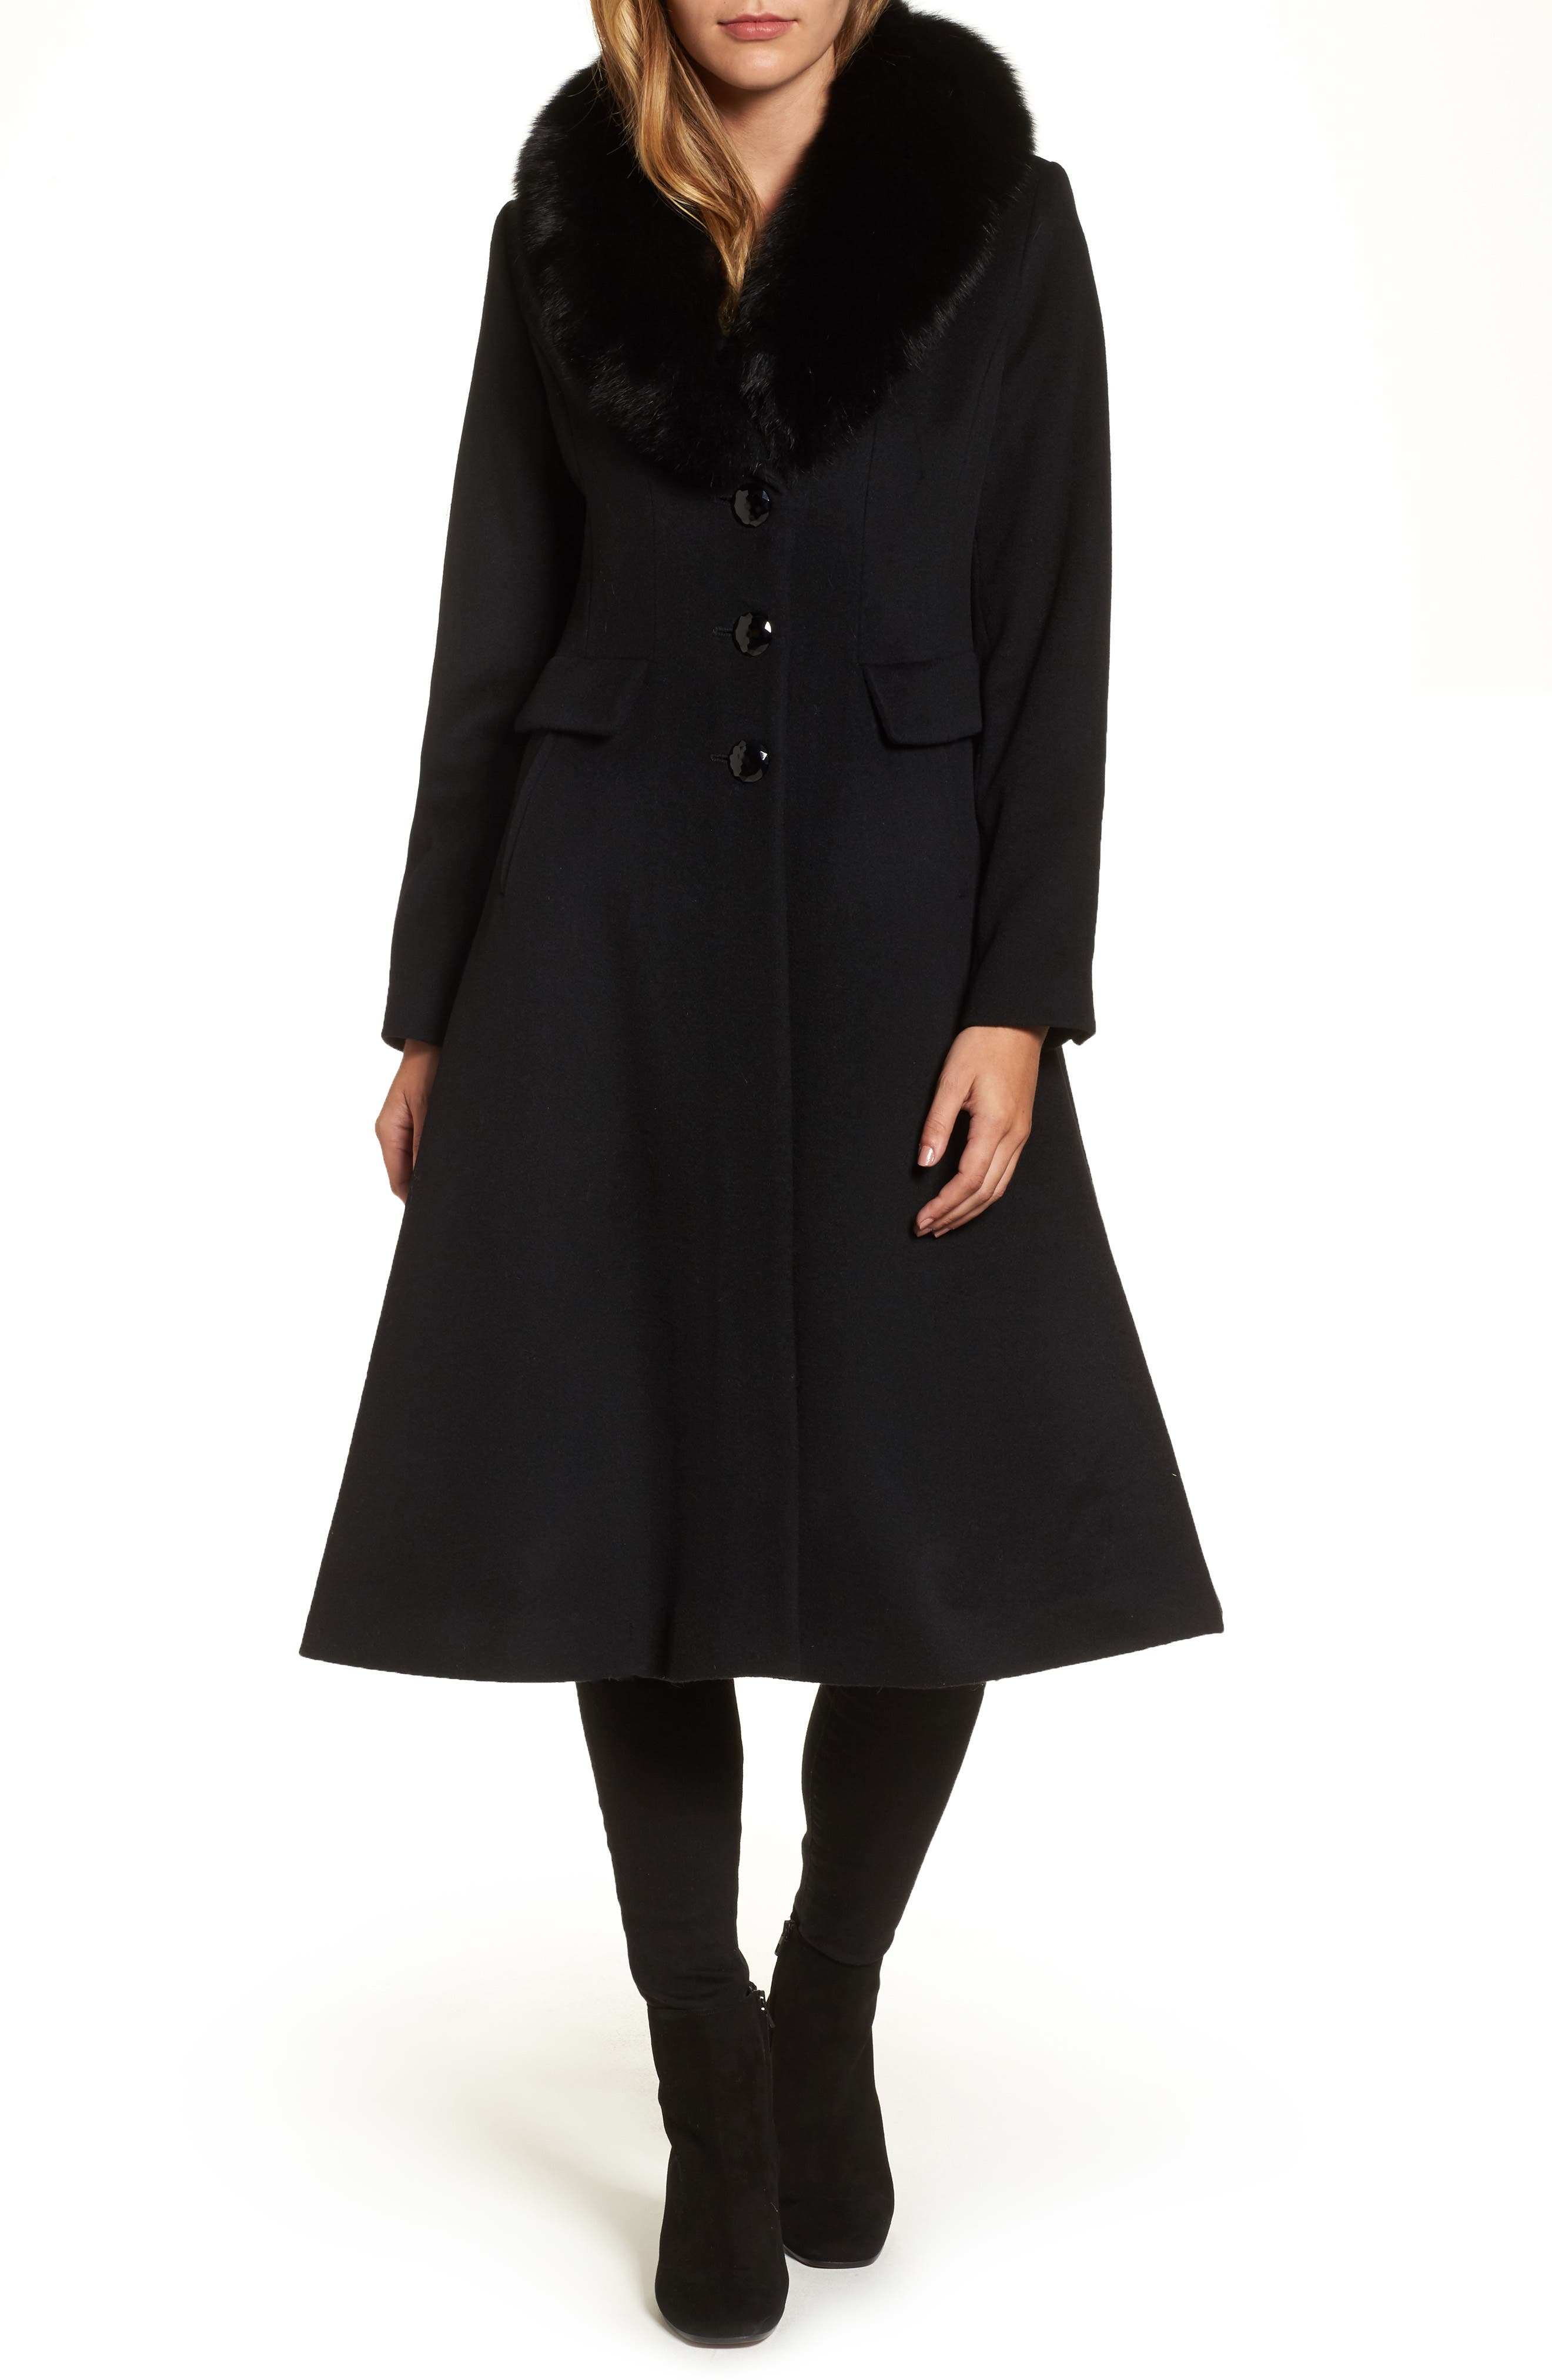 Alternate Image 1 Selected - George Simonton Couture Long Wool Blend Coat with Genuine Fox Fur Collar